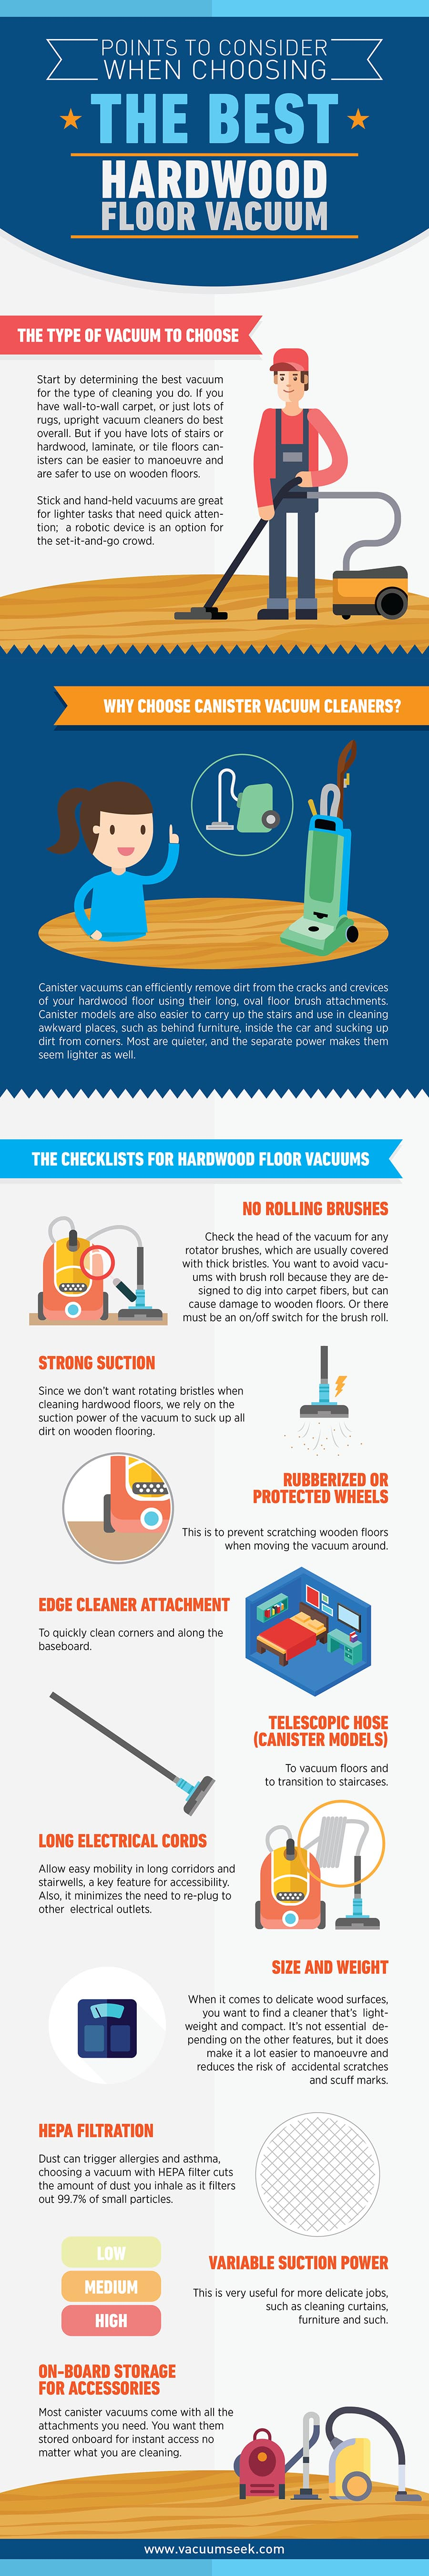 How To Make Sure Your Vacuum Cleaner Doesn't Destroy Your Hardwood Floor - Infographic